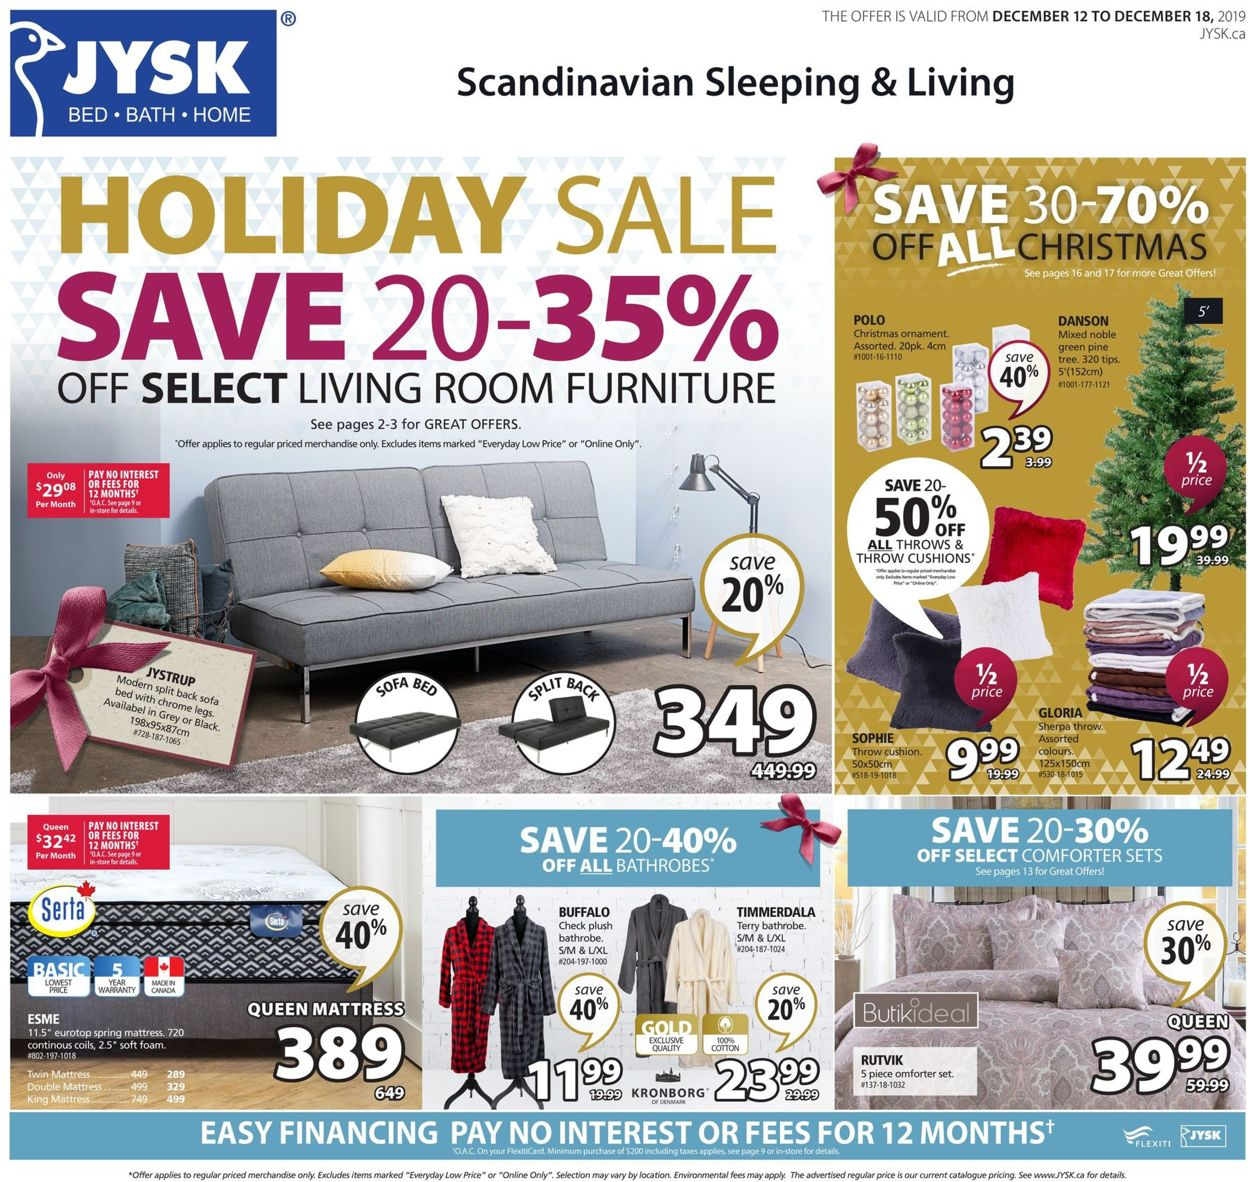 JYSK - HOLIDAY 2019 SALE